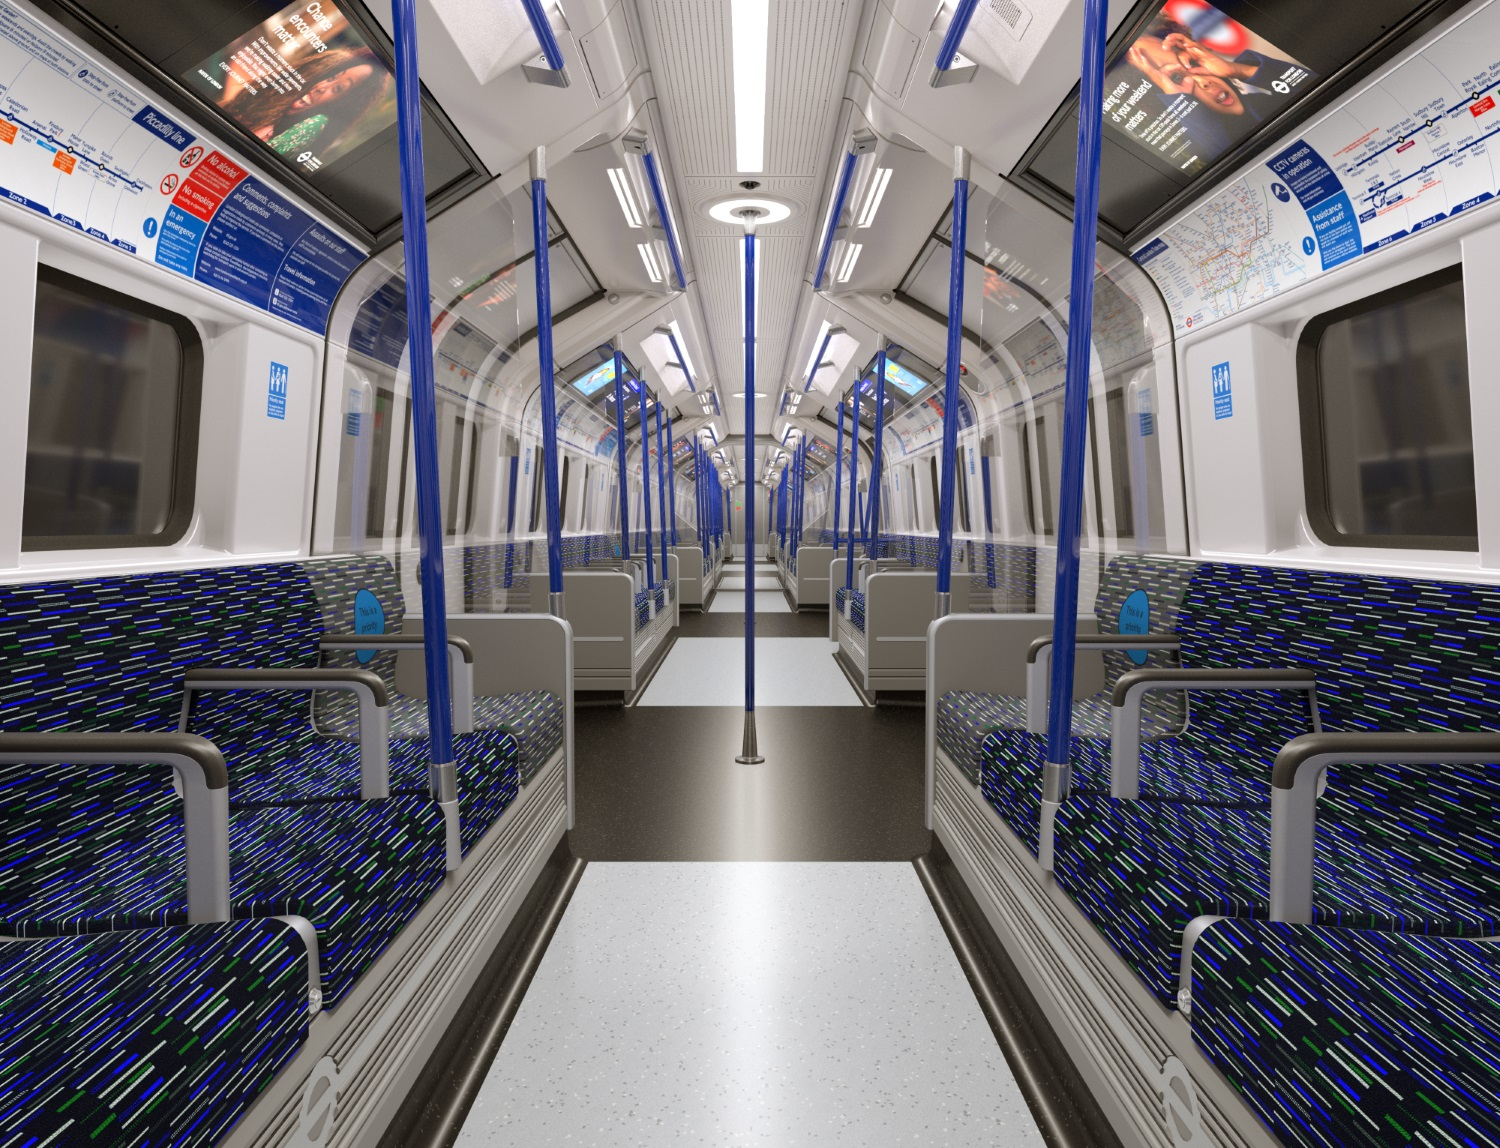 TFL & Siemens Mobility unveil new Picadilly line trains interior. Image courtesy of TFL